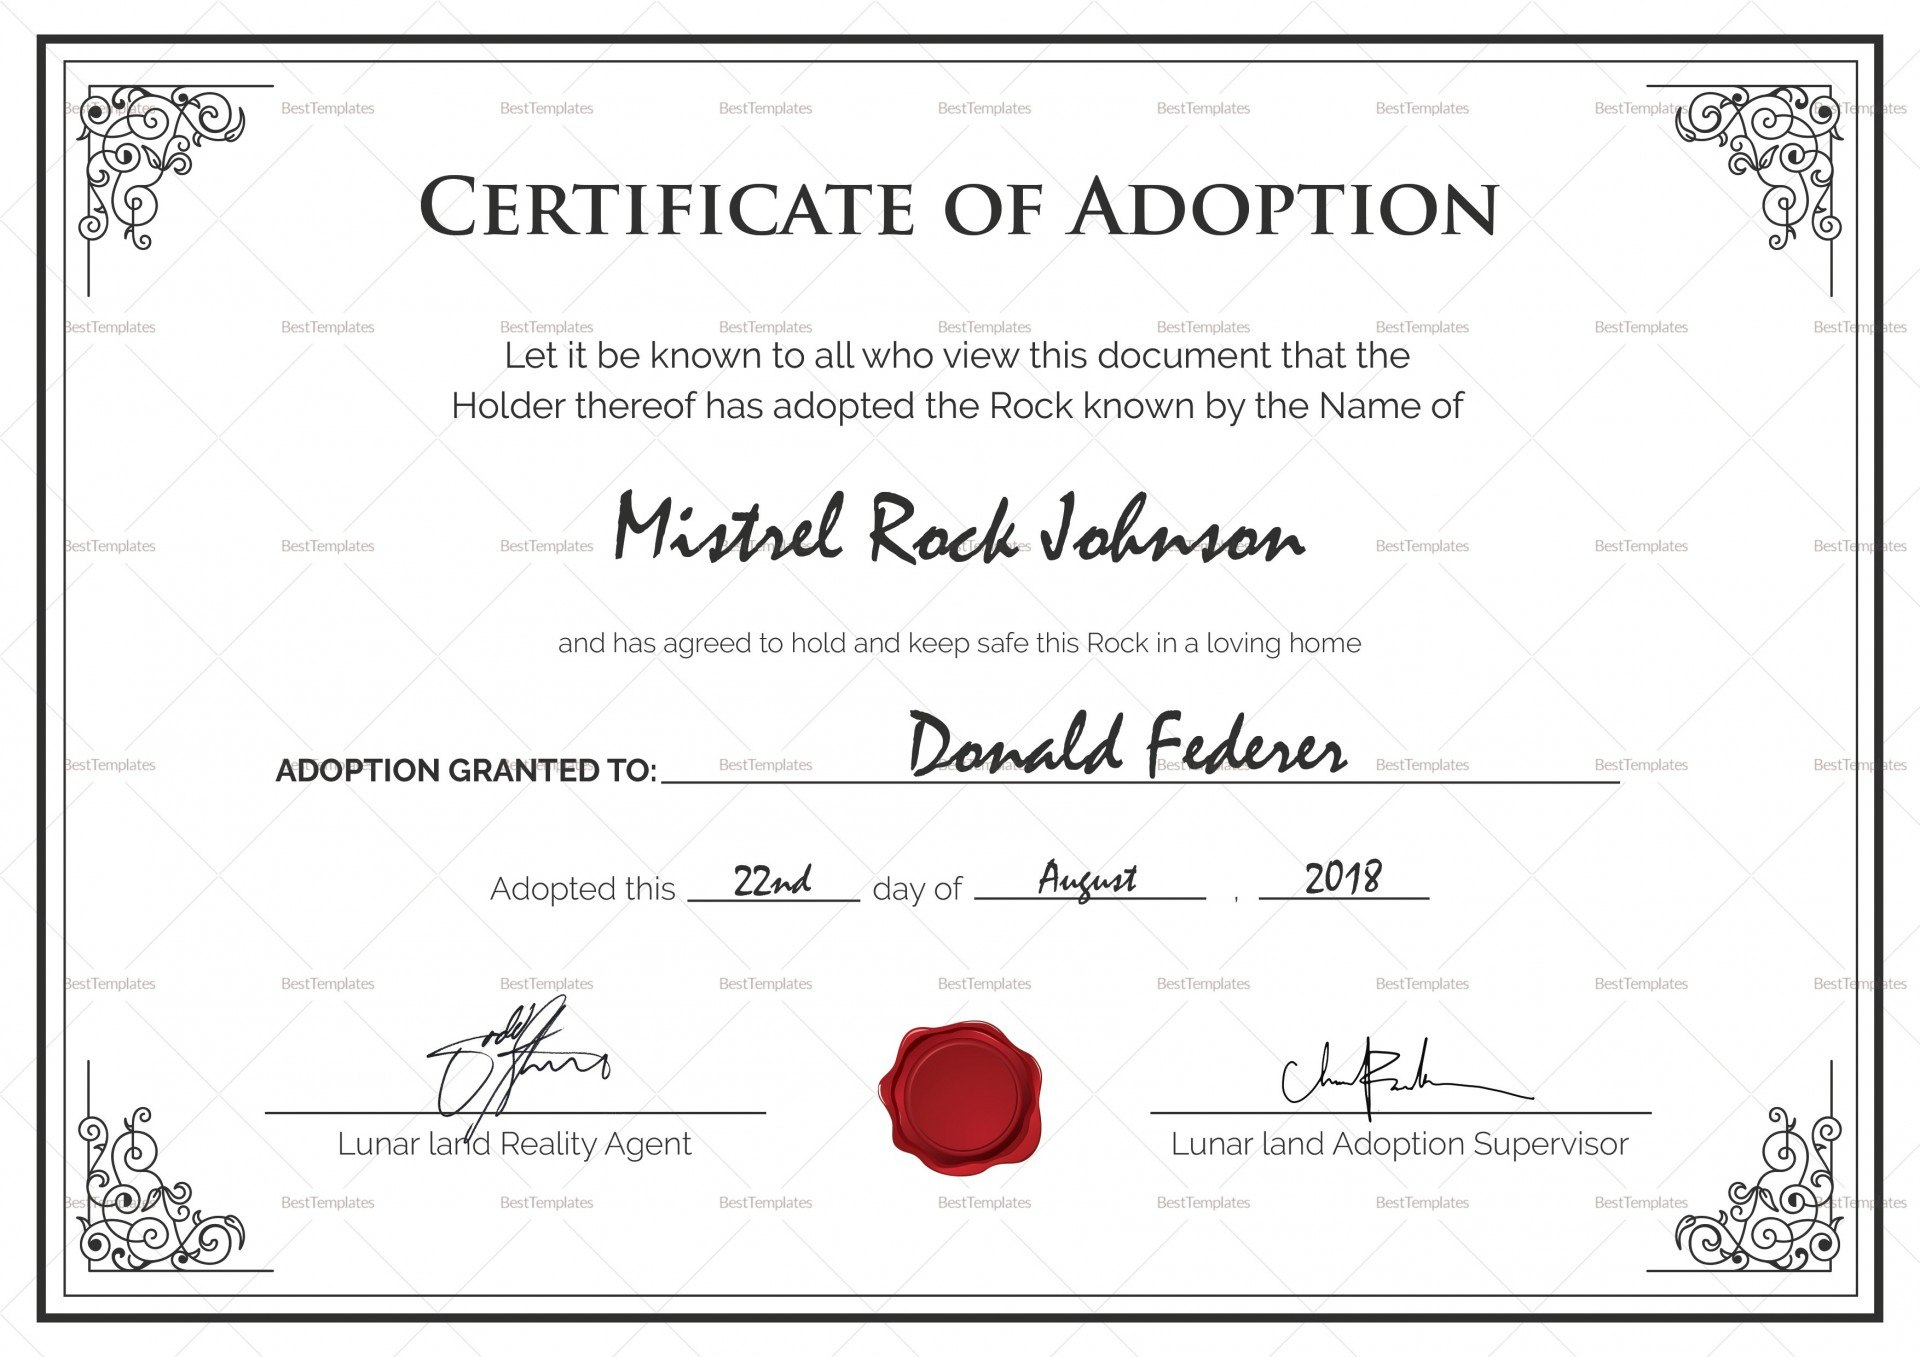 Adoption Certificate Template Best Birth Design In Psd Word Of With Blank Adoption Certificate Template